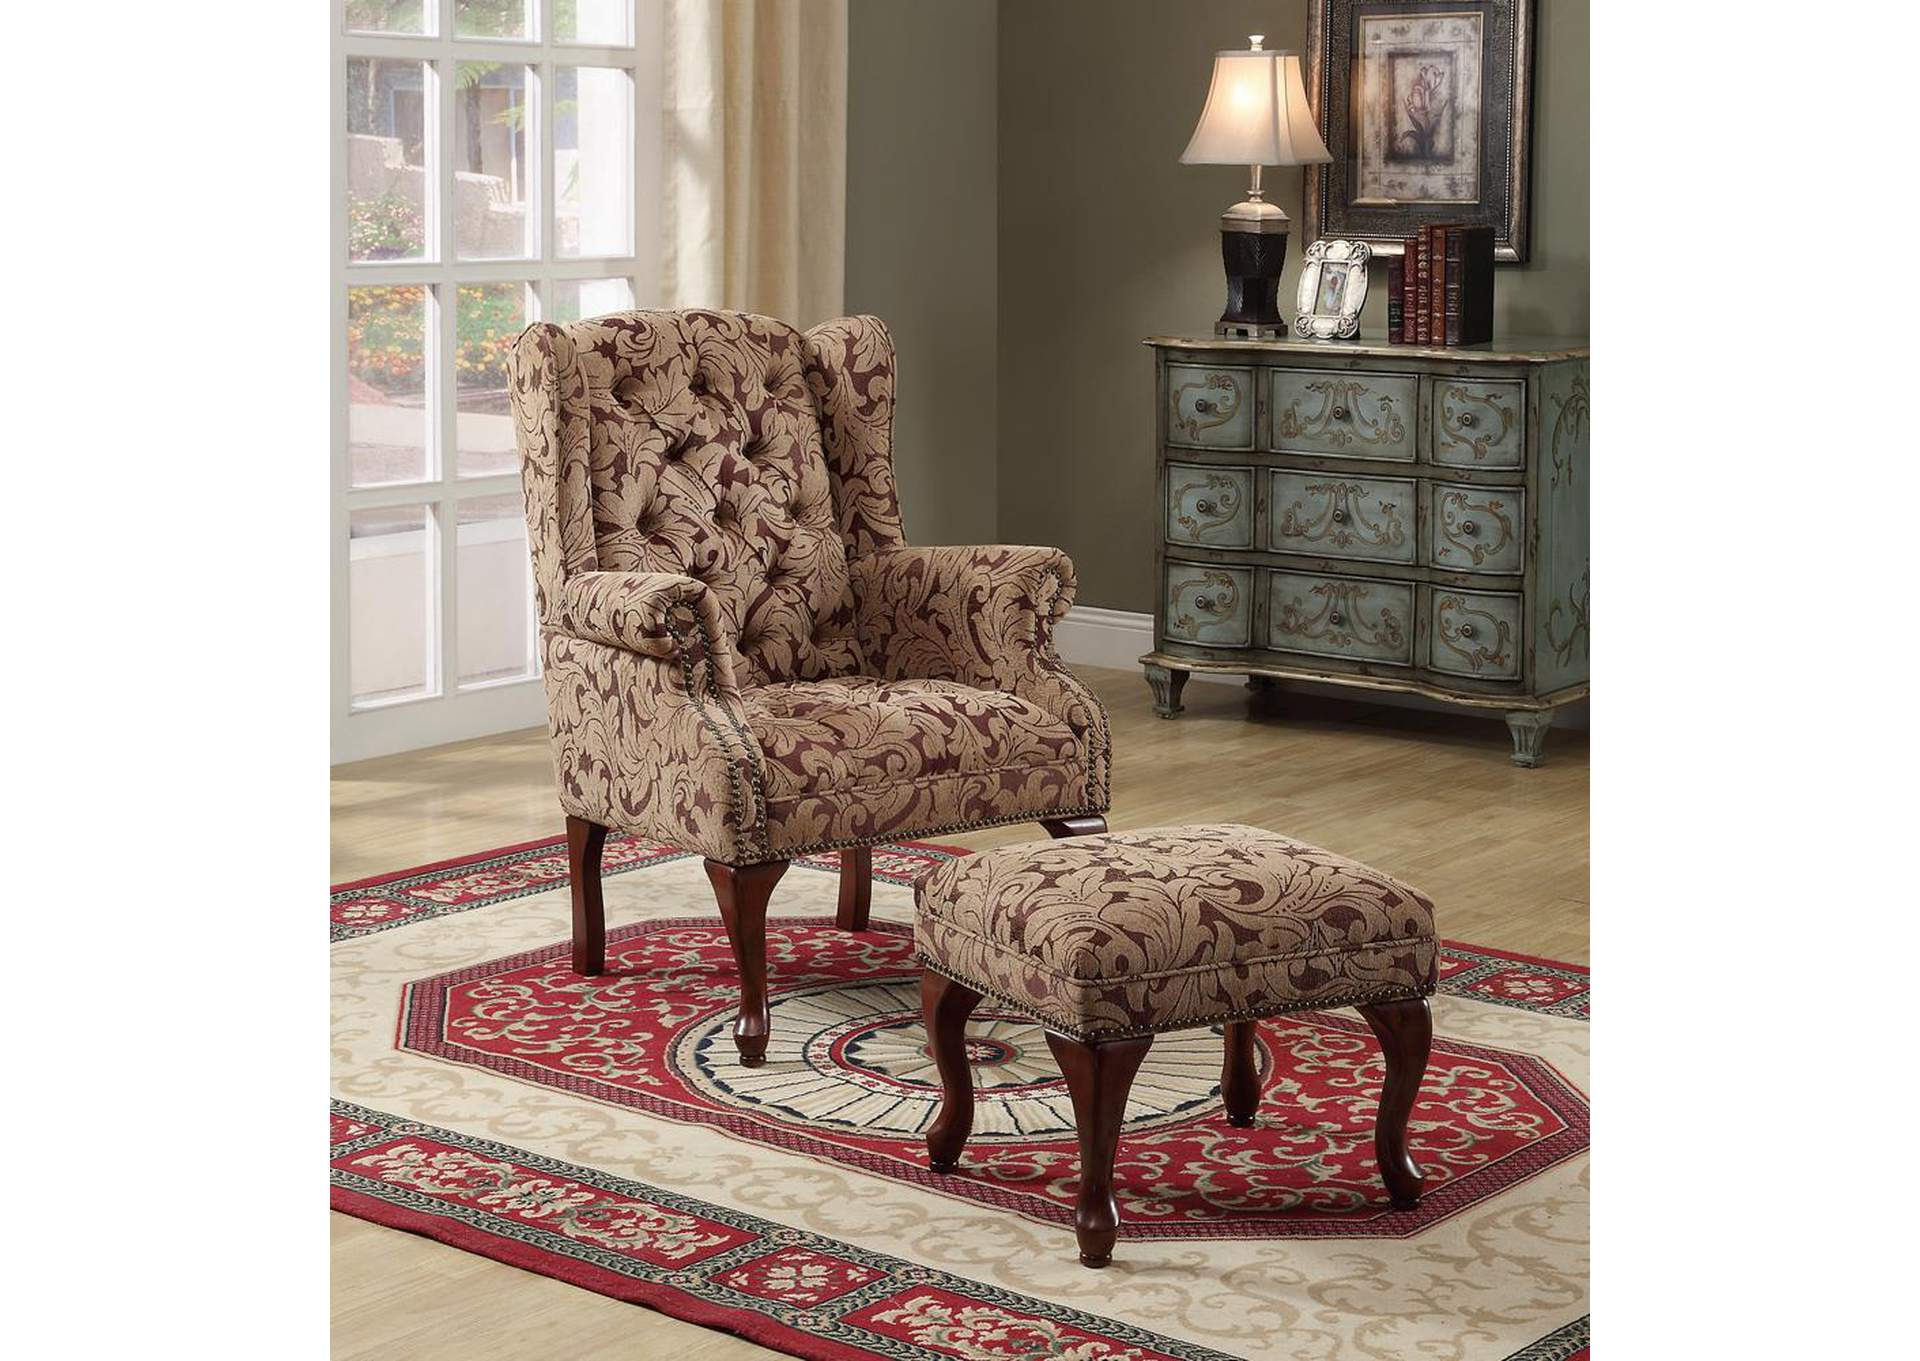 Queen Anne Light Brown Accent Chair,Coaster Furniture